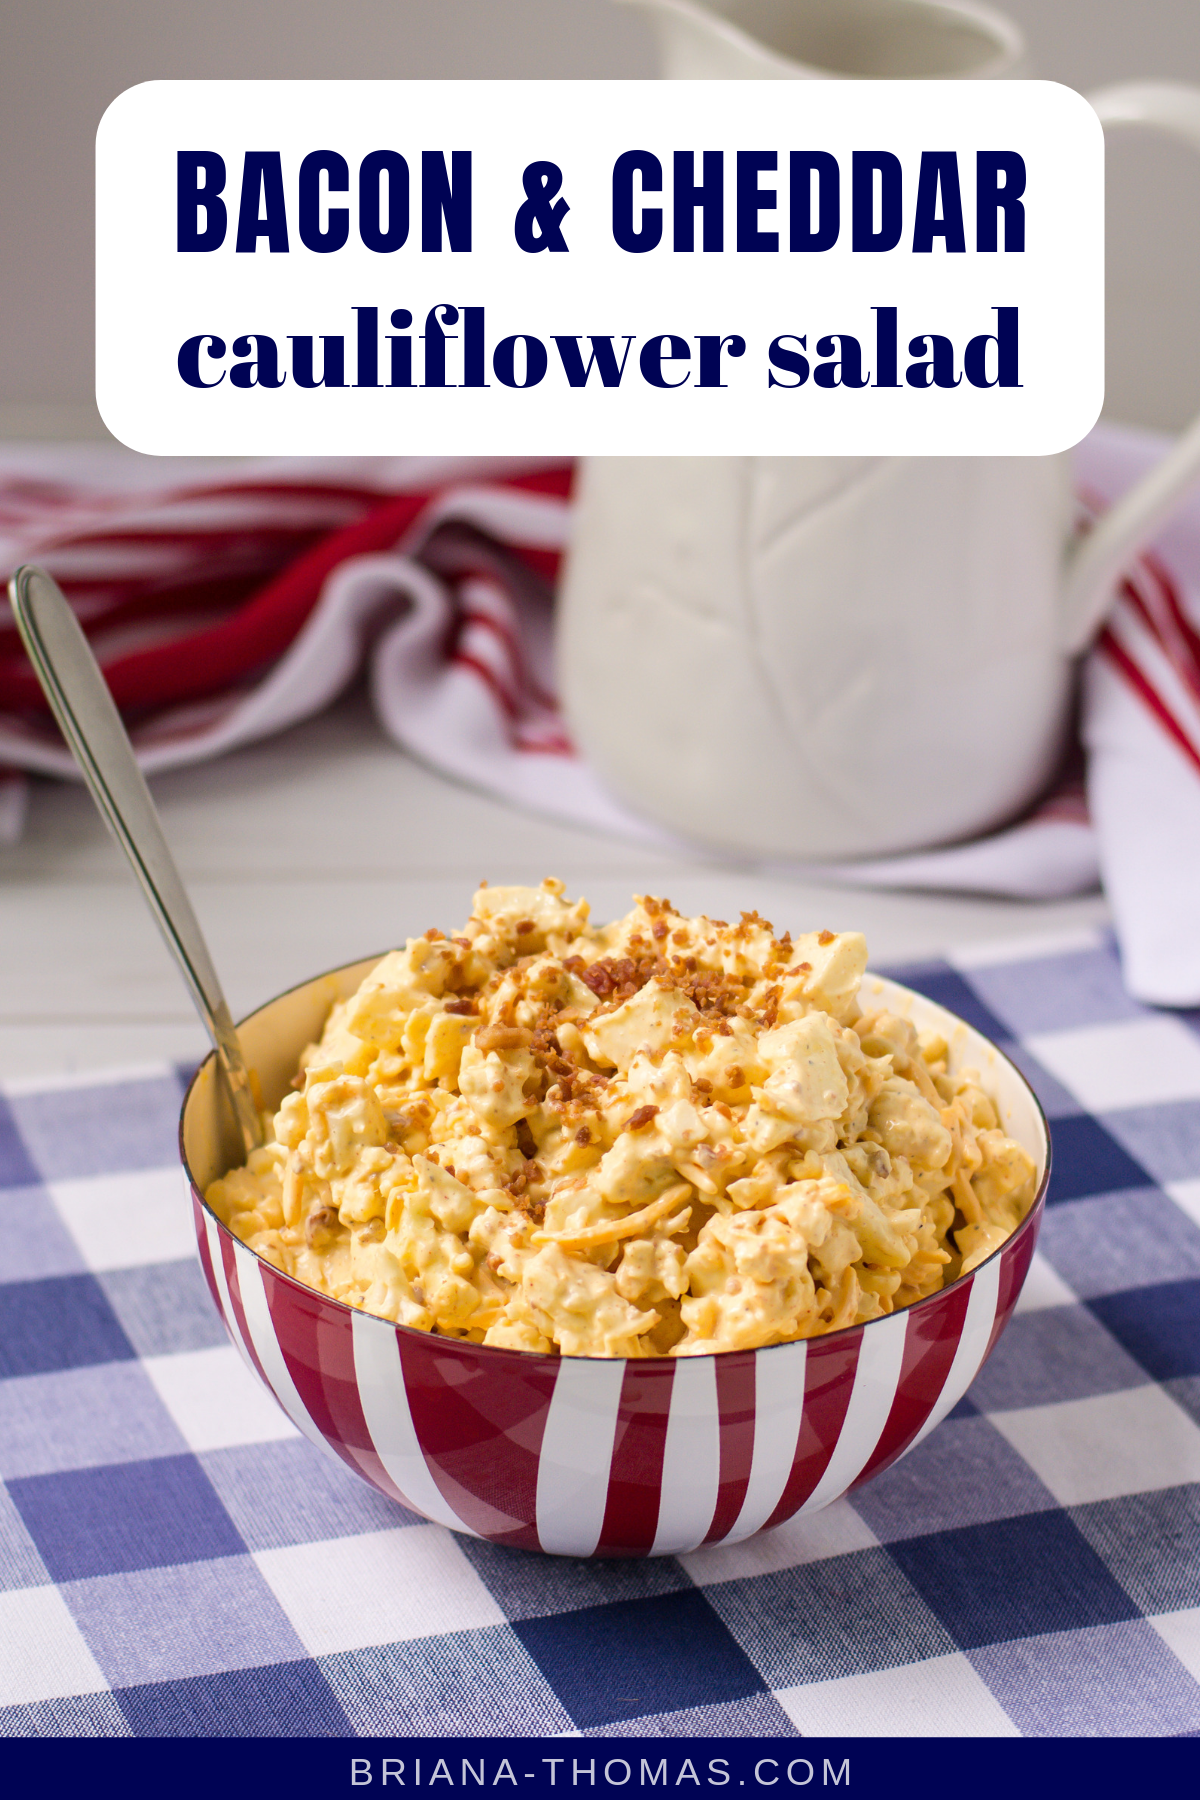 Bacon & Cheddar Cauliflower Salad - THM S, low carb, sugar free